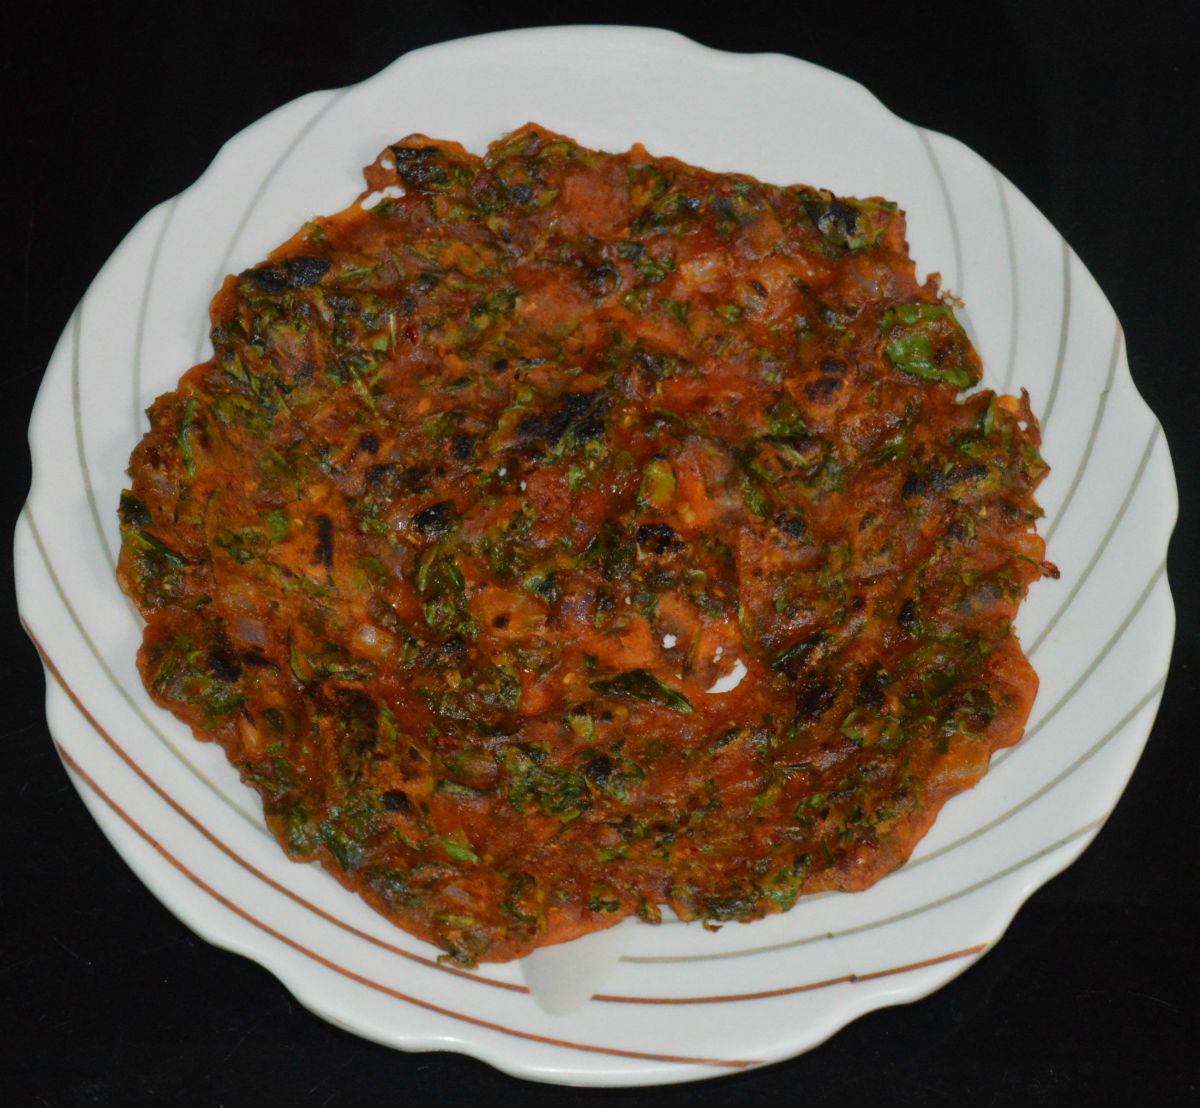 Fenugreek leaf pancake (methi roti).